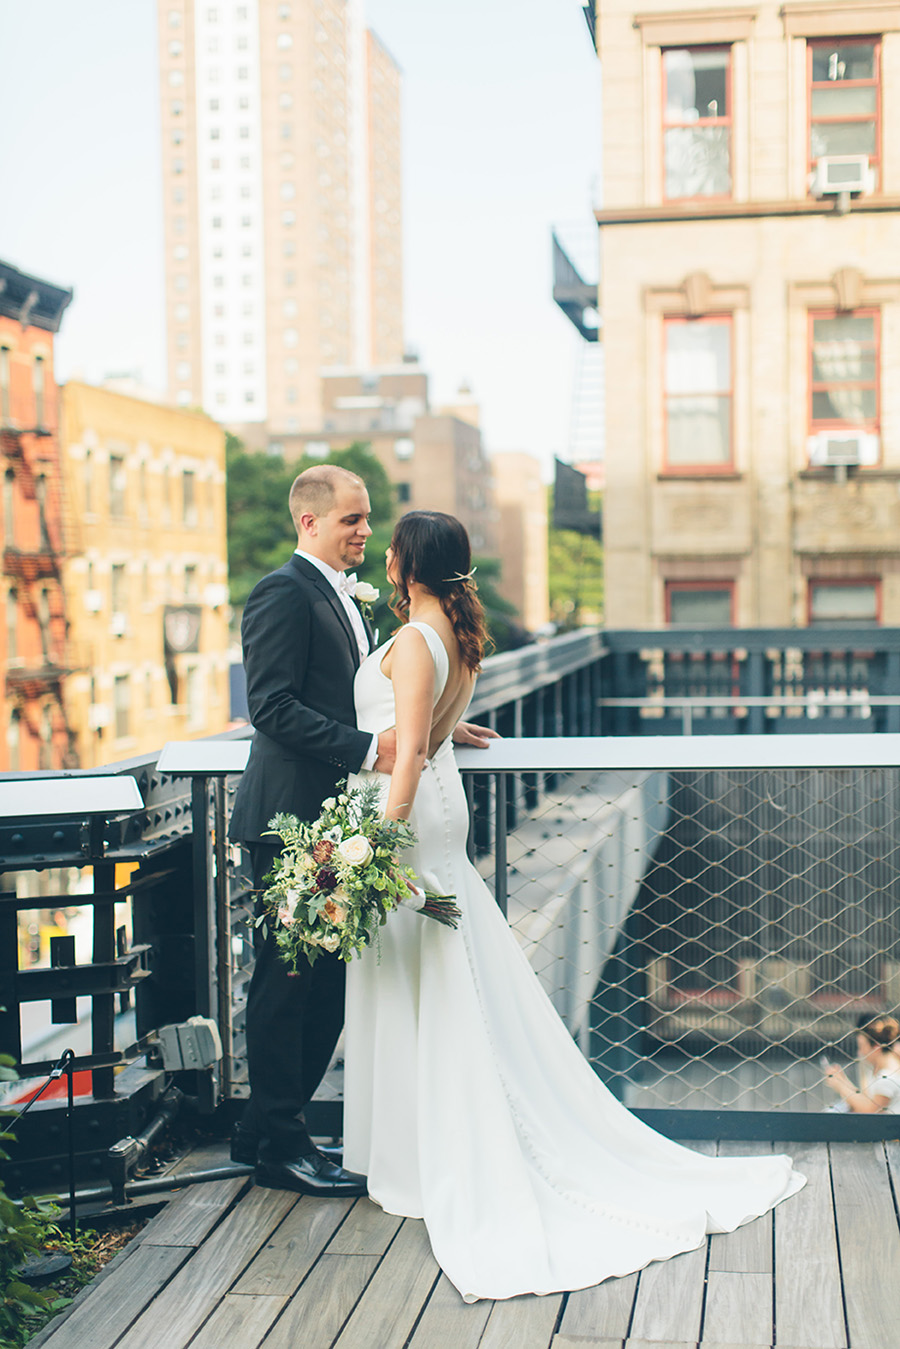 NEW-YORK-CITY-WEDDING-PHOTOGRAPHER-CURRENT-CHELSEAPIERS-THE-HIGHLINE-DREAM-HOTELS-CHELSEA-MANHATTAN-BROOKLYN-WEDDING-PHOTOGRAPHY-0061.jpg